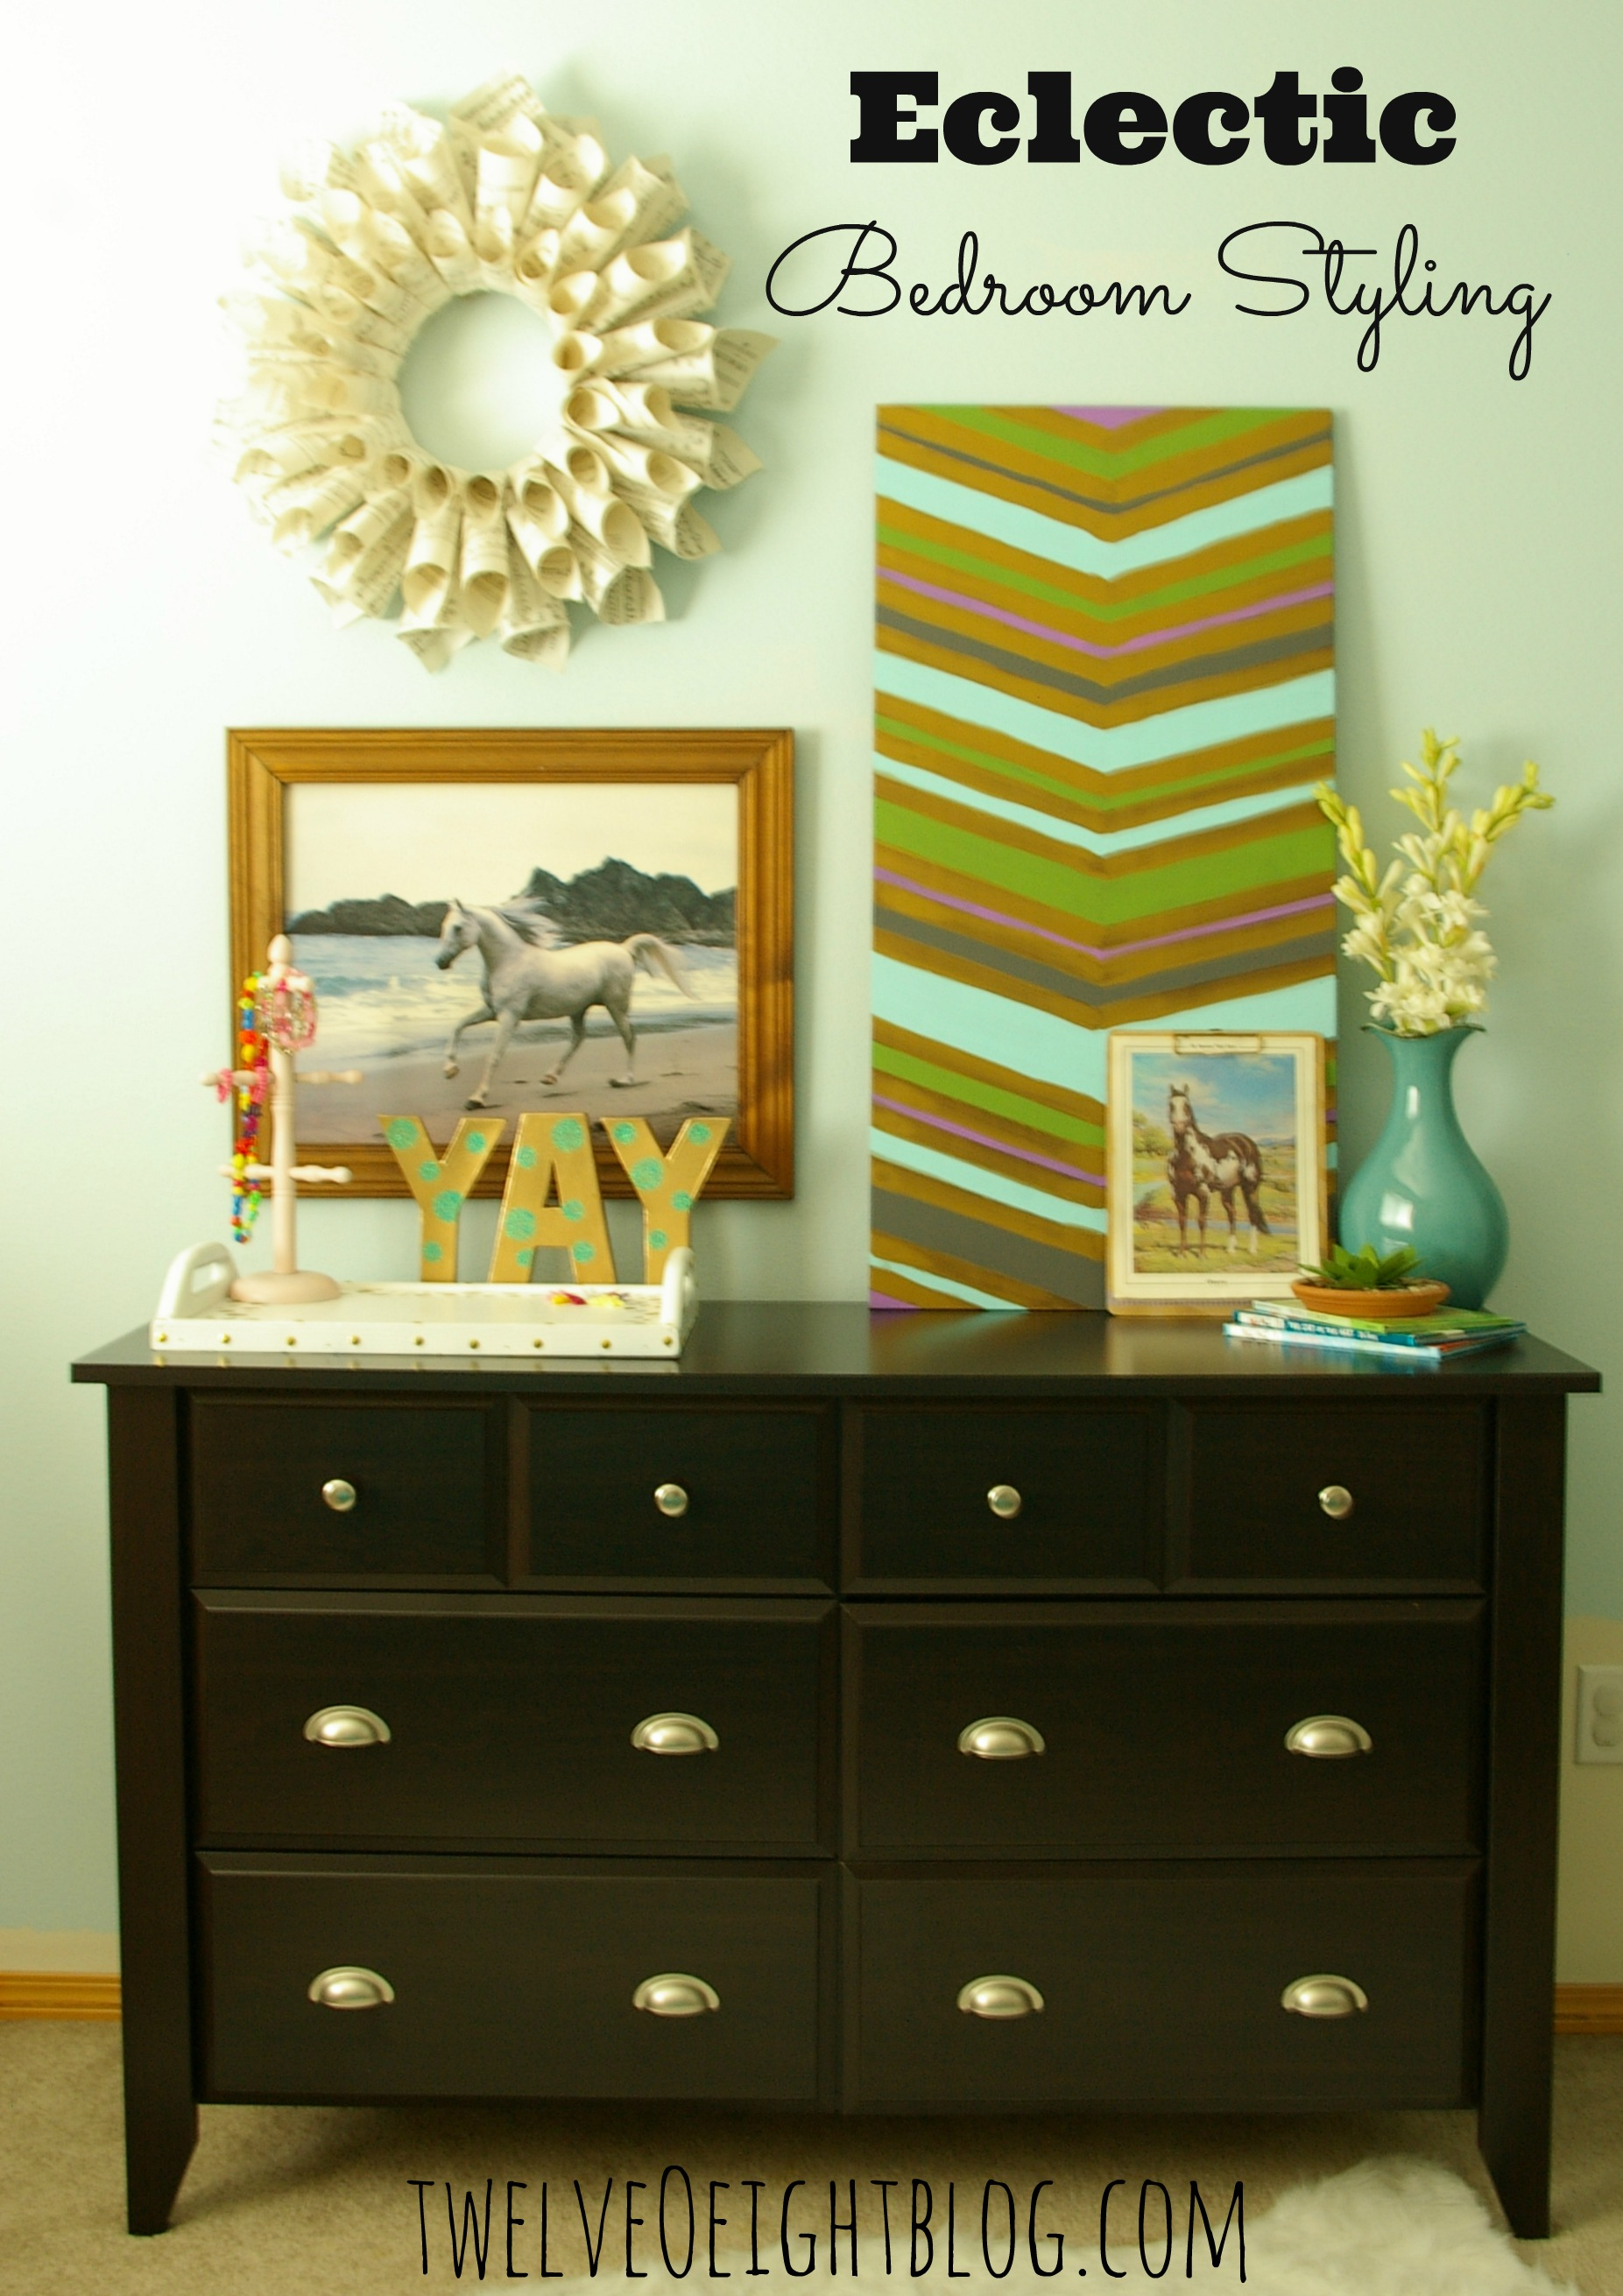 Eclectic bedroom styling a new dresser for Eclectic style furniture